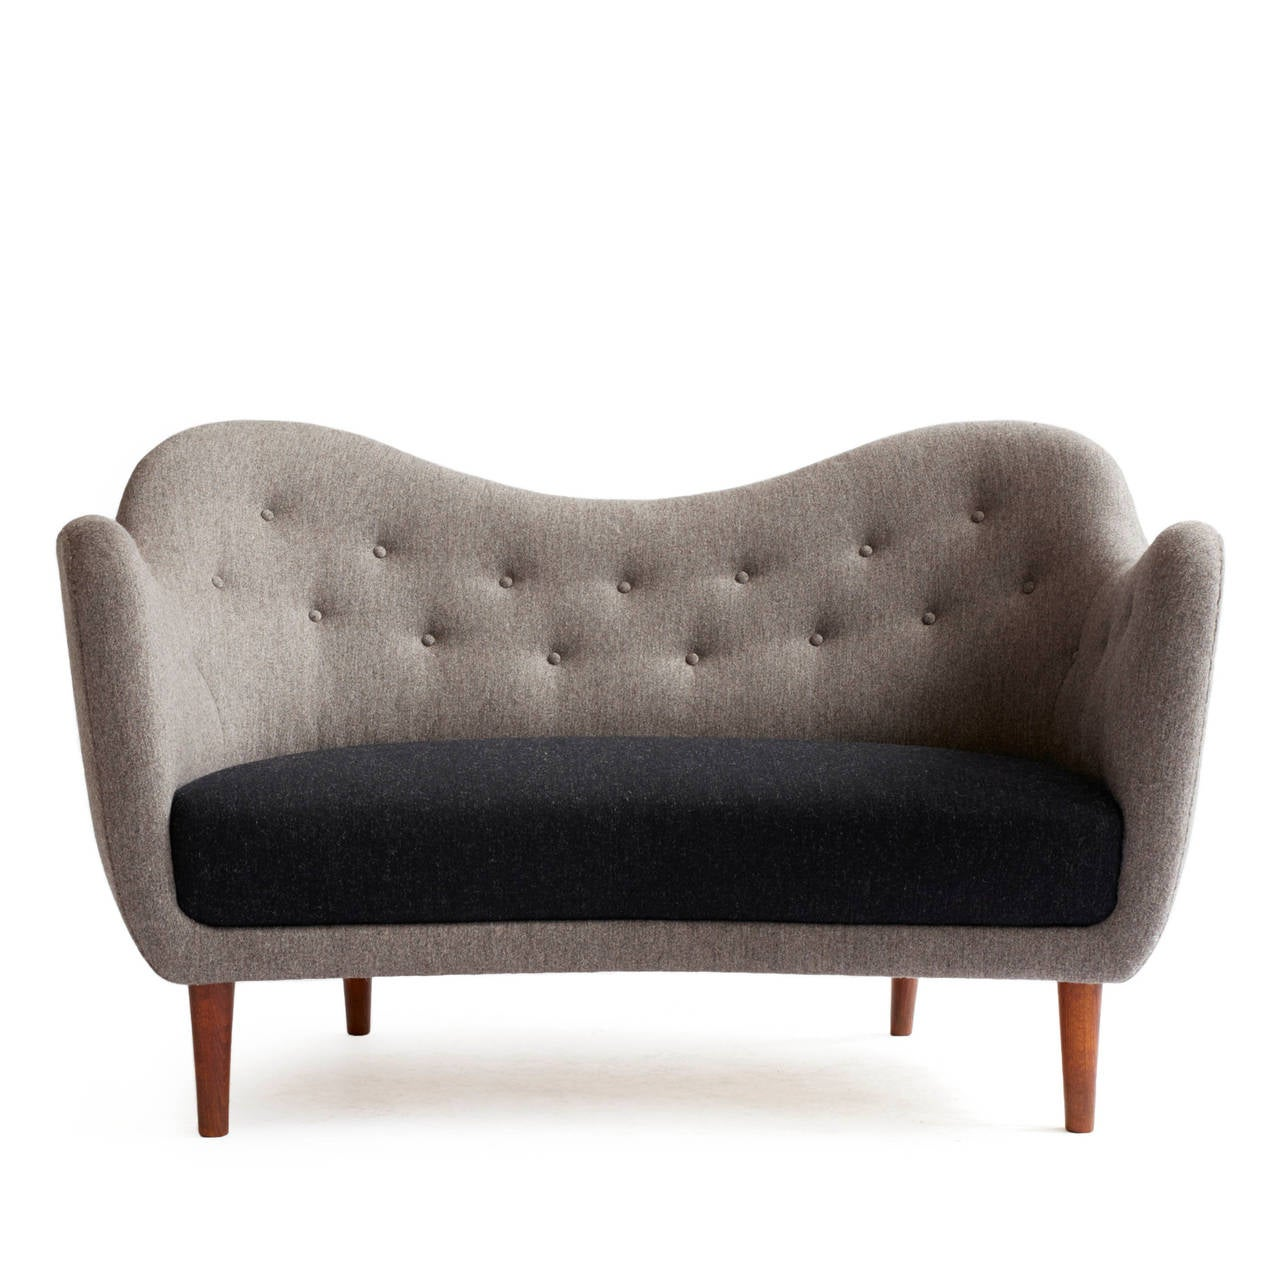 Finn Juhl two person sofa upholstered with two nuances of grey wool, tapering legs of stained beech. 